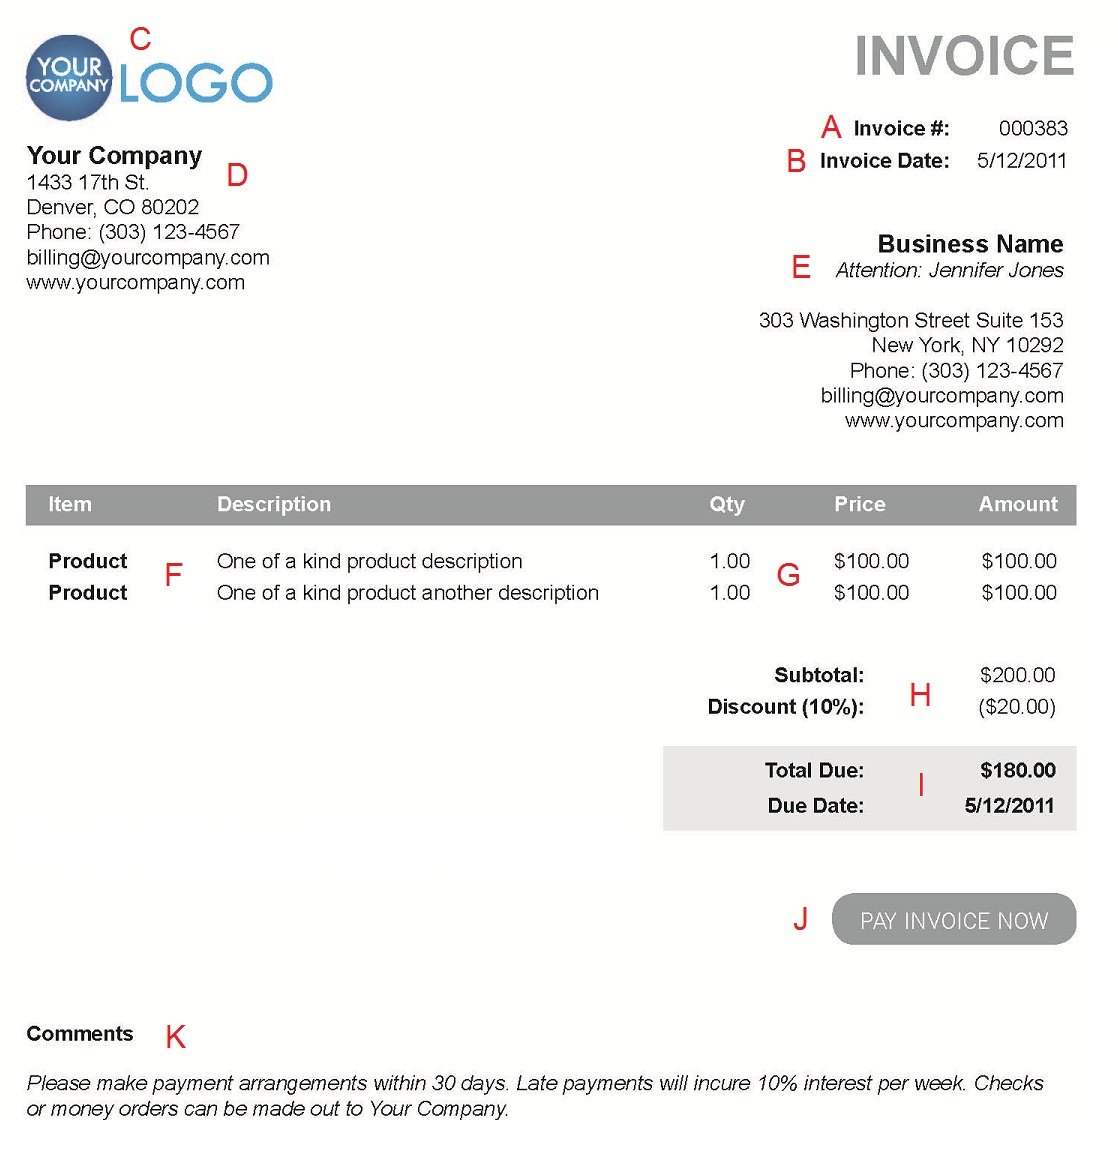 Bringjacobolivierhomeus  Pretty The  Different Sections Of An Electronic Payment Invoice With Gorgeous A  With Beautiful Sugarcrm Invoice Also Purchase Order And Invoice Difference In Addition Online Invoice Creator Free And Attached Invoice As Well As What Is Meant By Proforma Invoice Additionally Used Car Invoice Template From Paysimplecom With Bringjacobolivierhomeus  Gorgeous The  Different Sections Of An Electronic Payment Invoice With Beautiful A  And Pretty Sugarcrm Invoice Also Purchase Order And Invoice Difference In Addition Online Invoice Creator Free From Paysimplecom